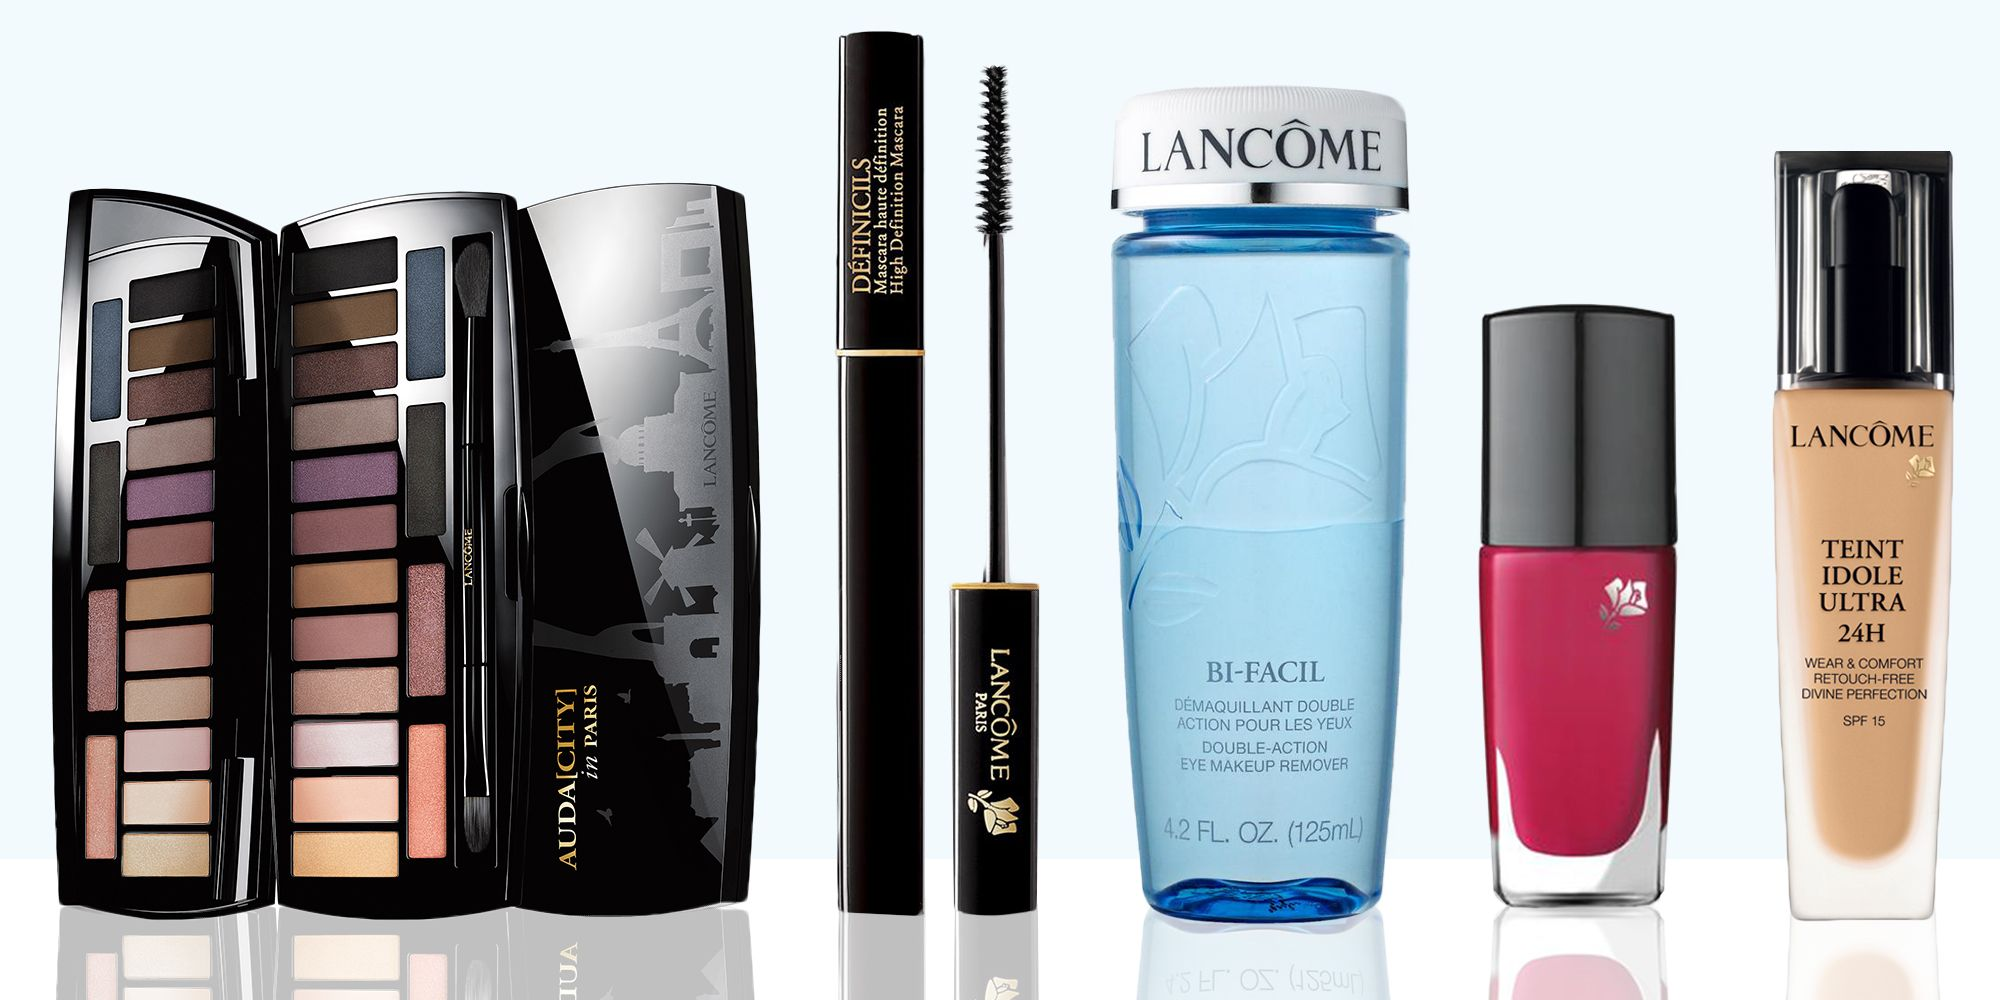 10 Best Lancome Makeup Products 2018 - Lancome Foundation, Mascara, & More